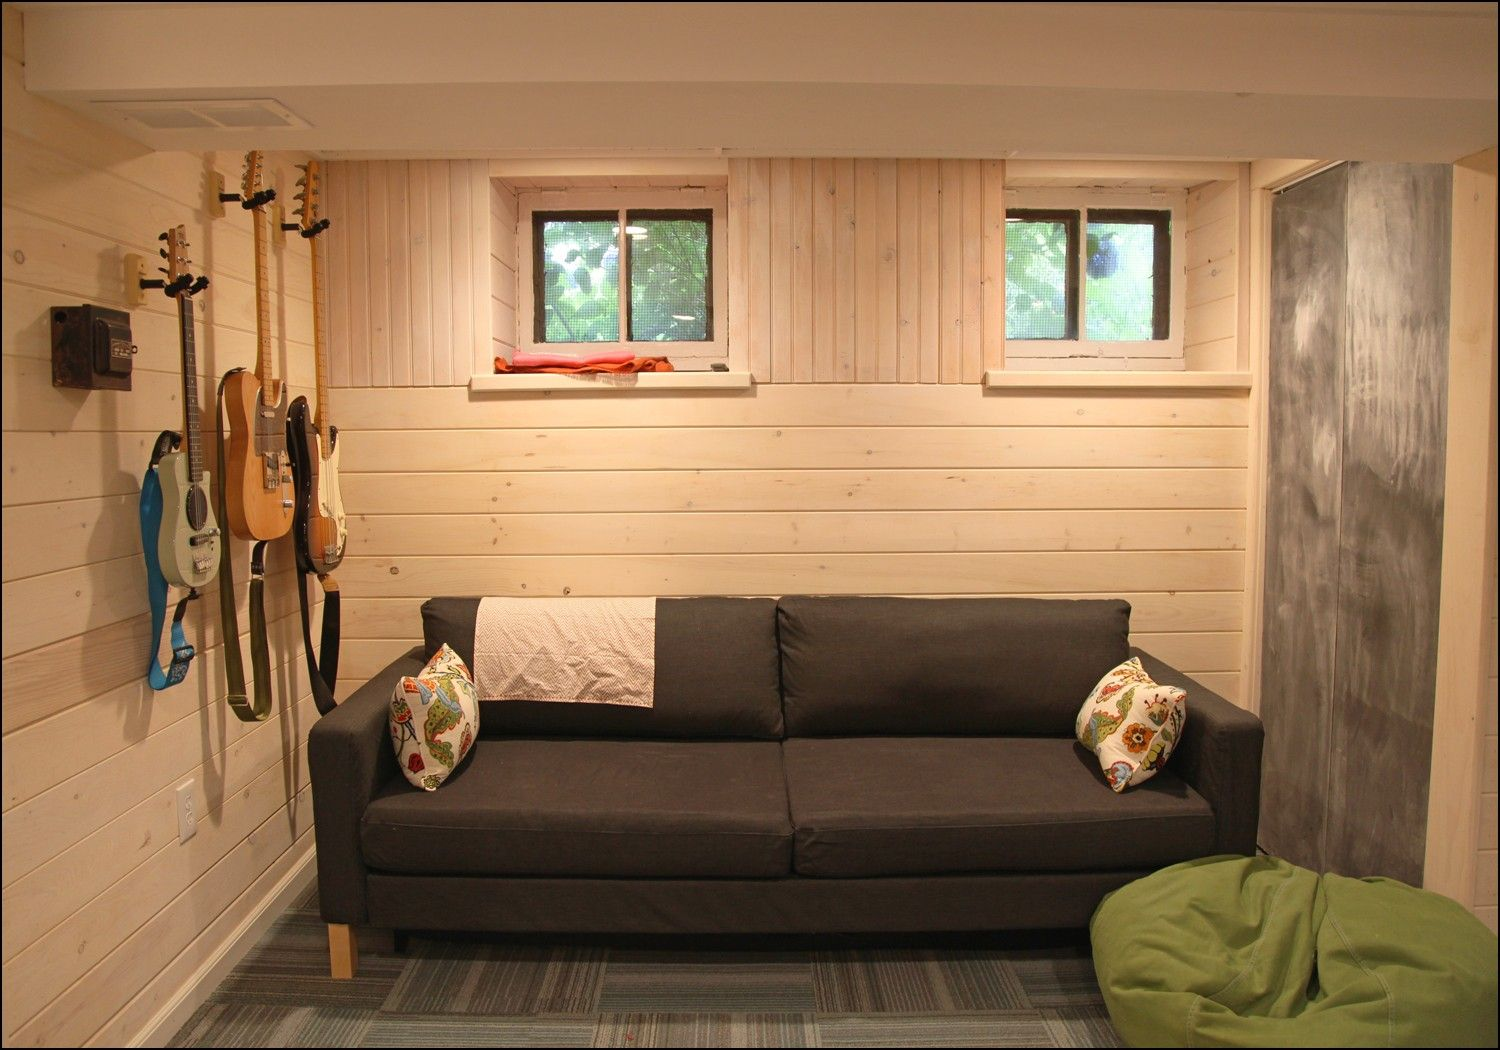 Sofa for Basement | Couch & Sofa Gallery | Pinterest | Basements and ...